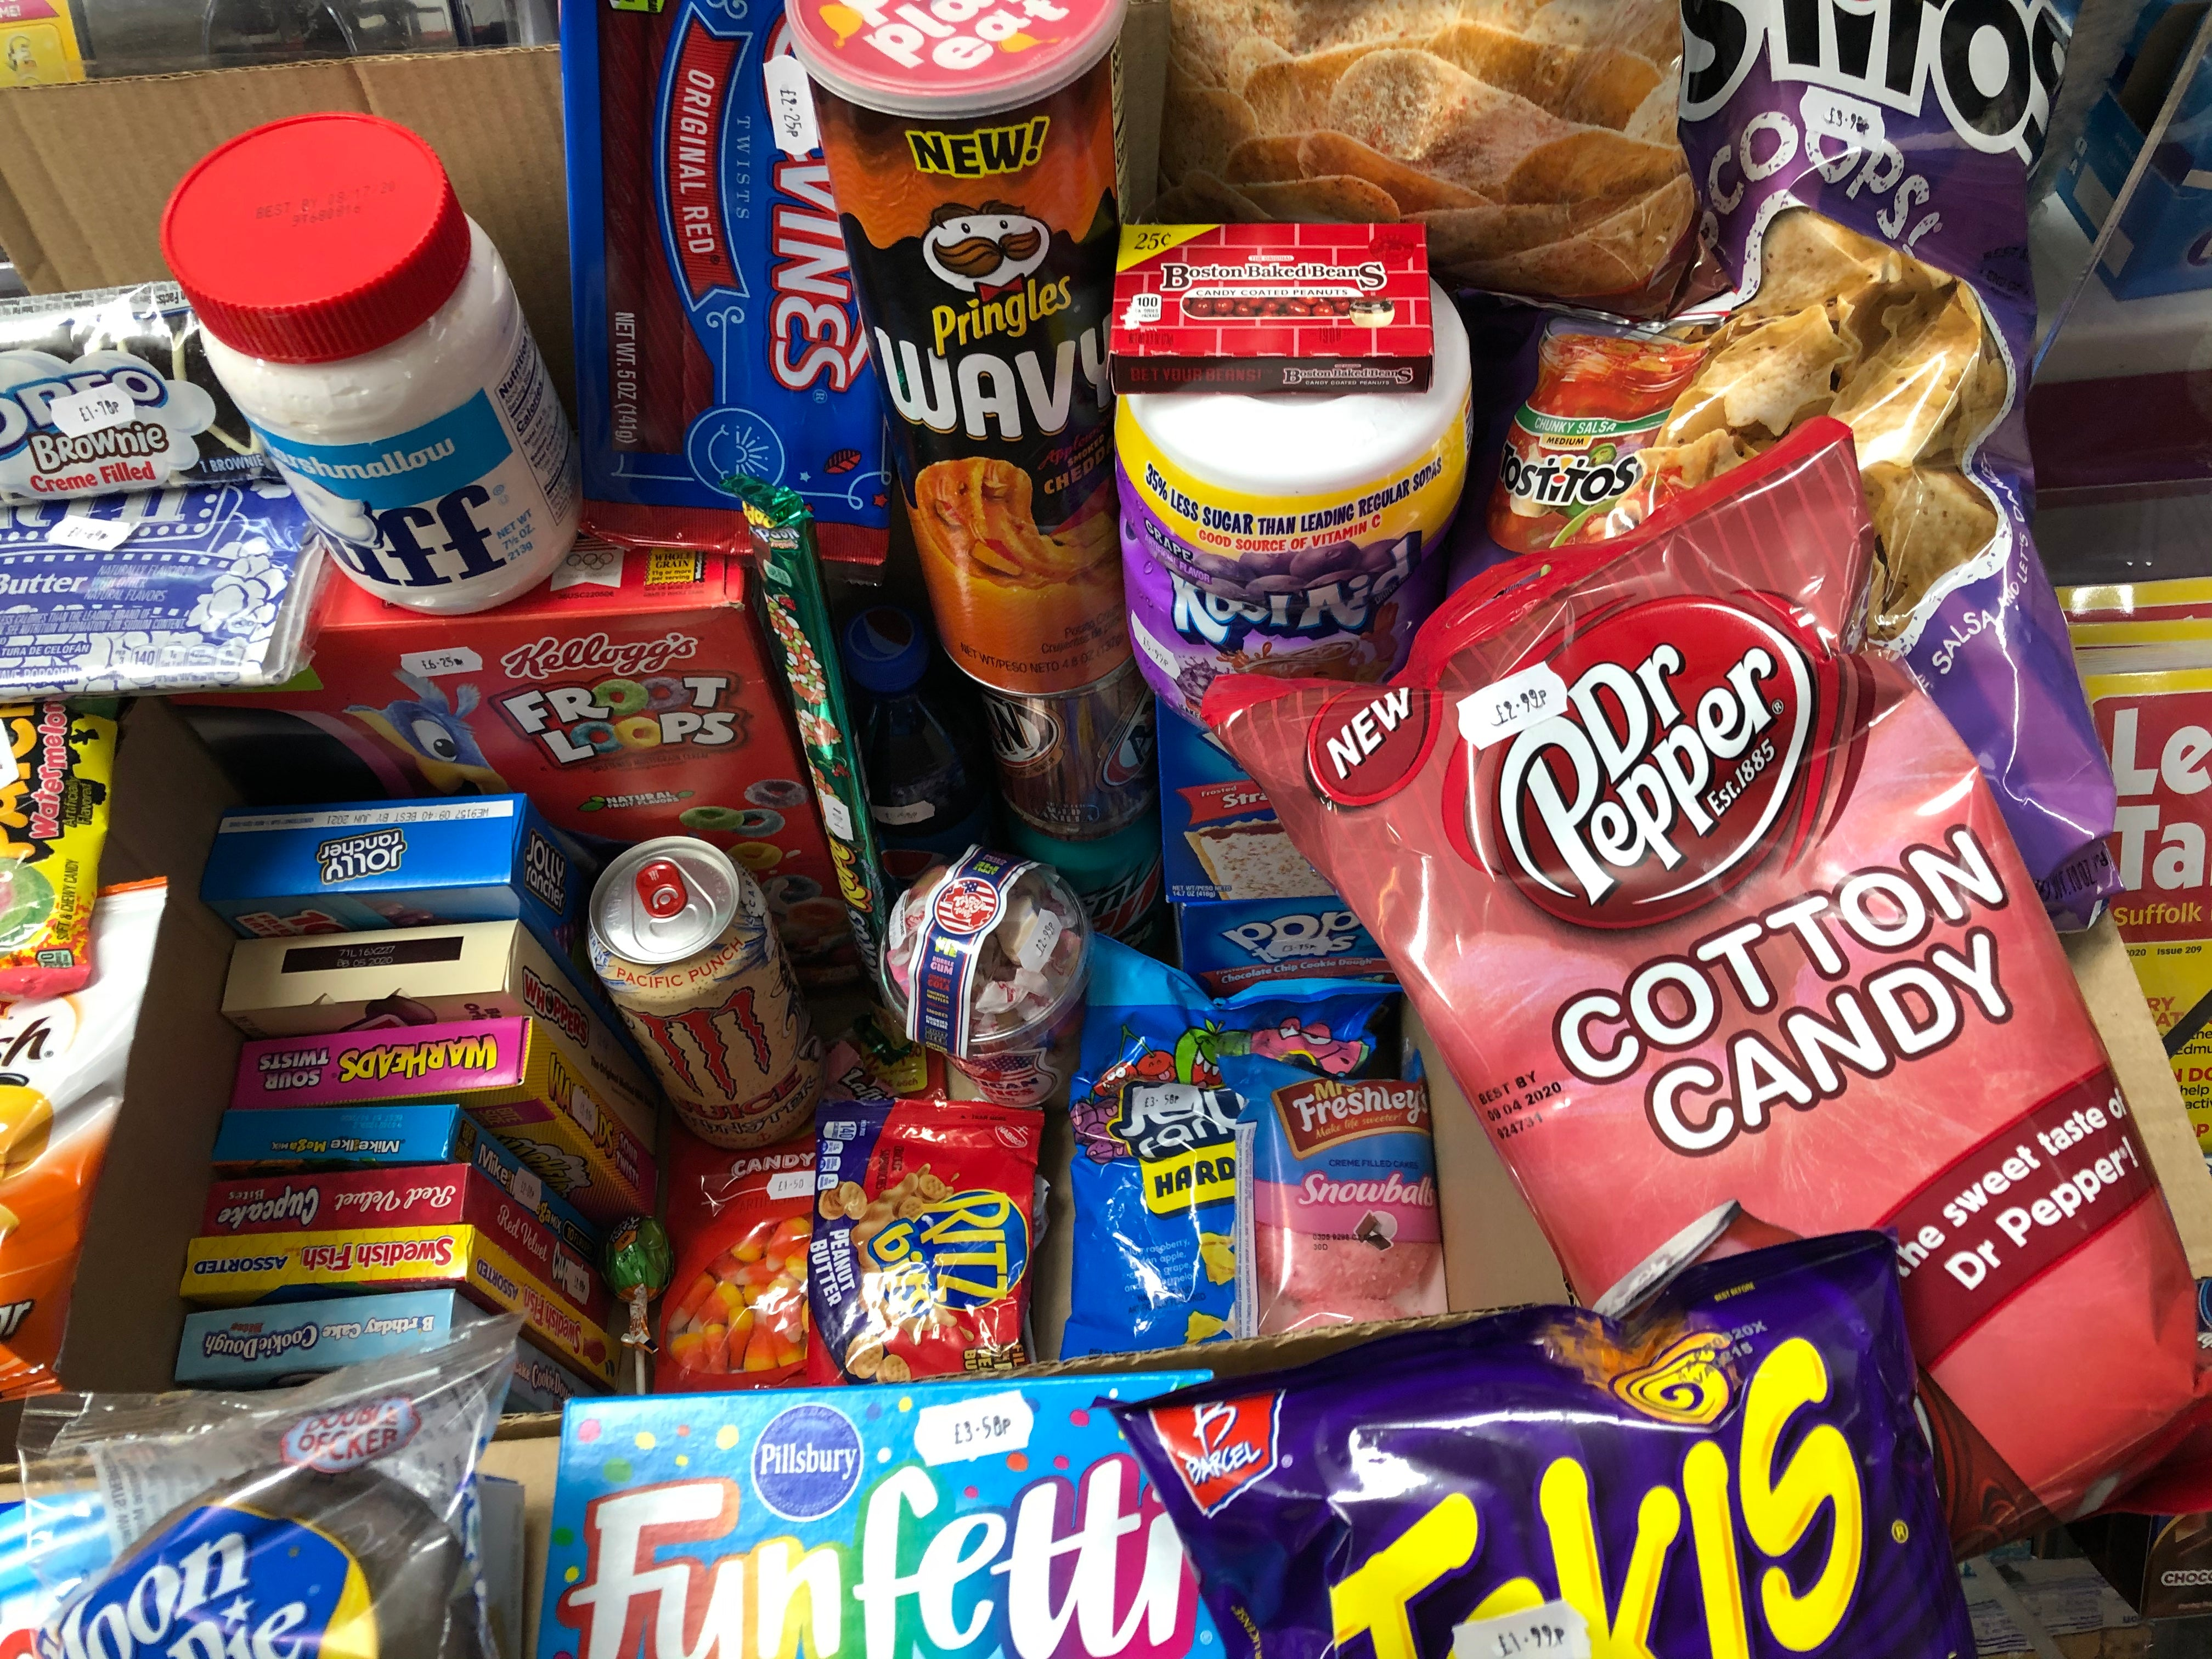 American Candy Stores Surprise Selection - Mega Selection - £99